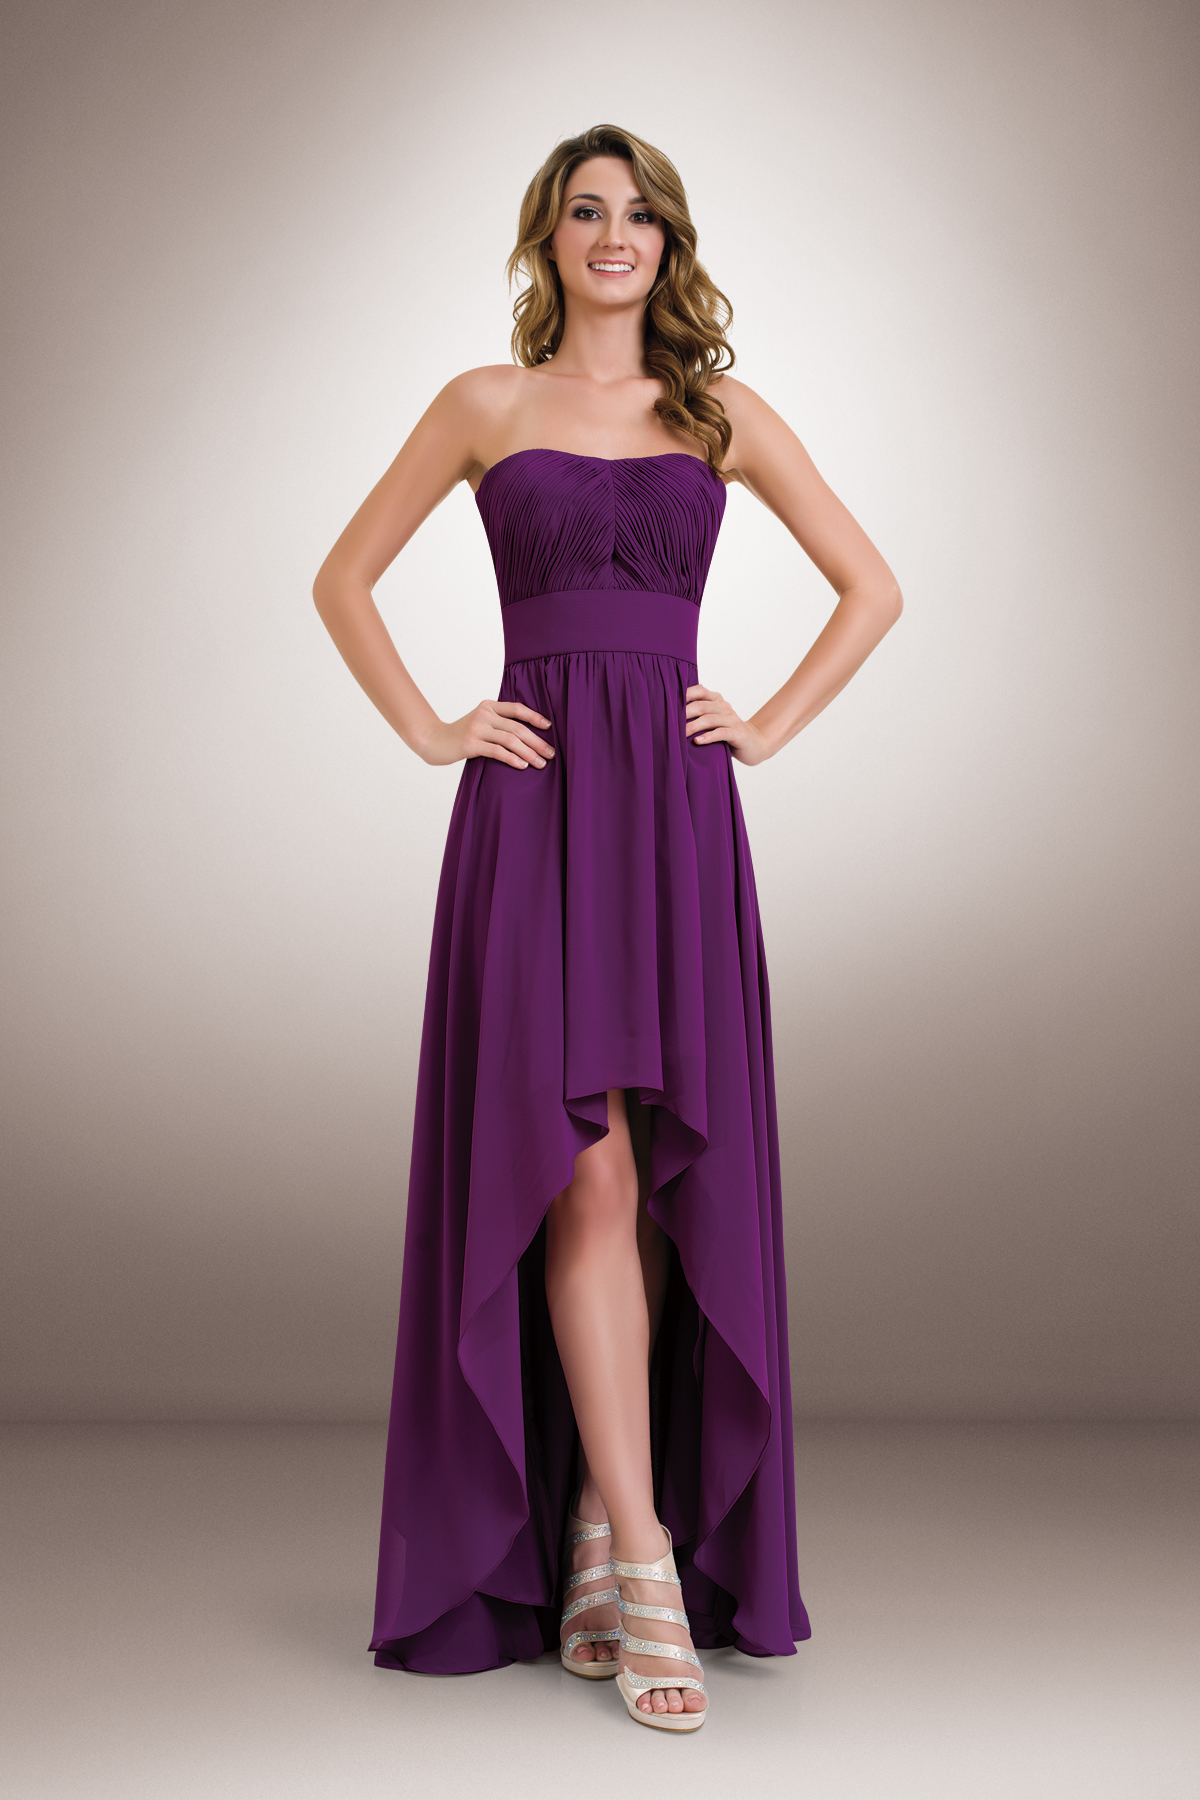 Bridesmaids Dresses - Let\'s Get Married Bridal Boutique